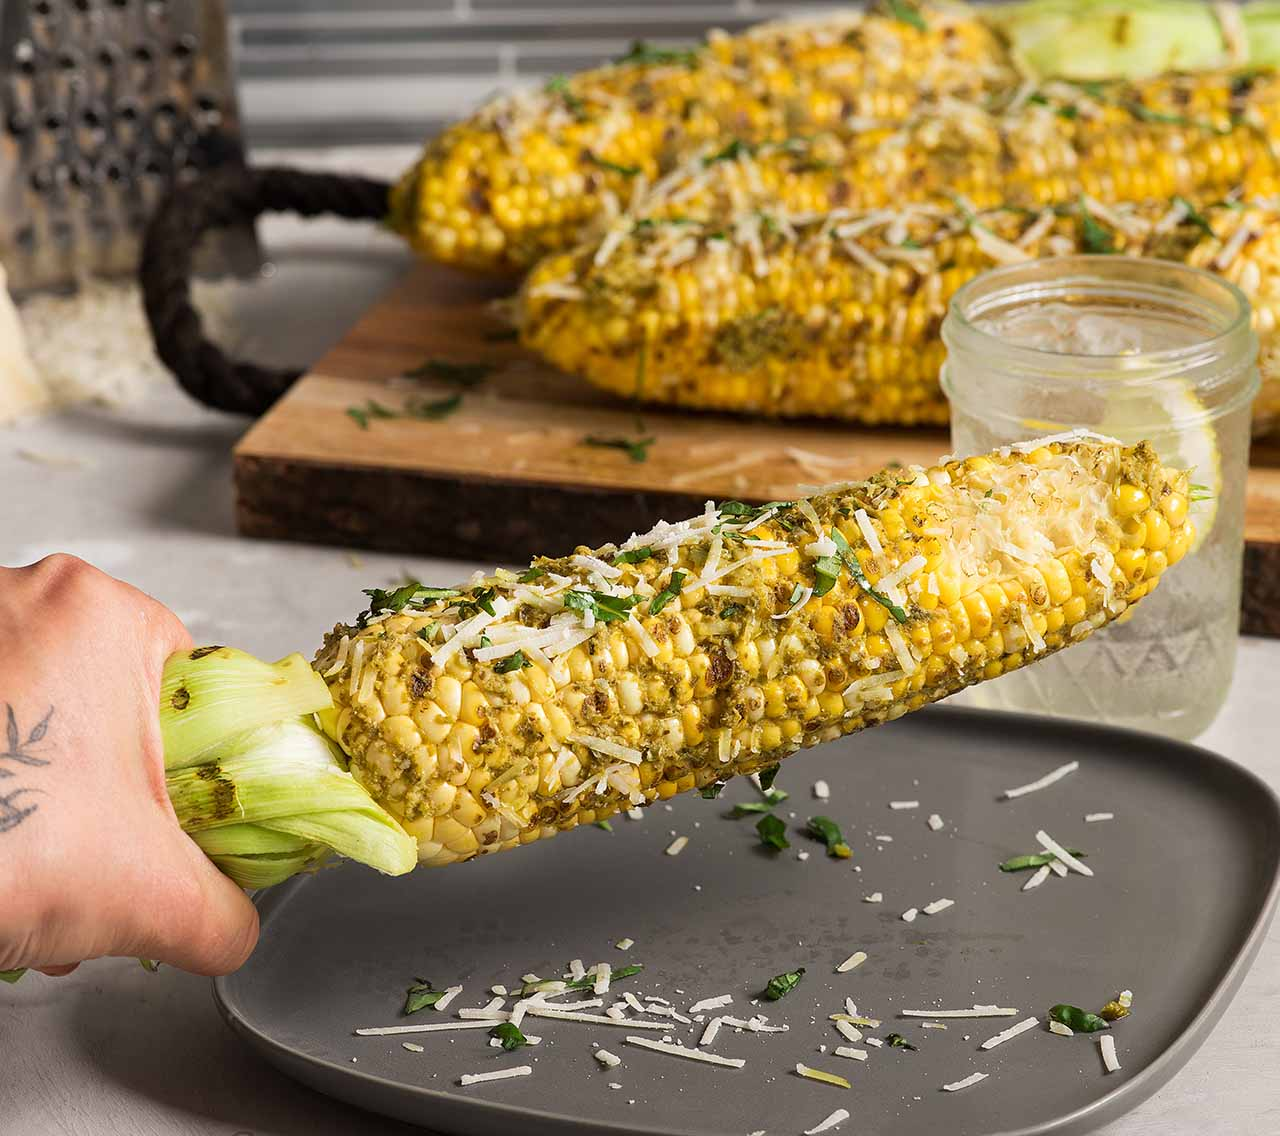 Corn-On-The-Cob Seasonings